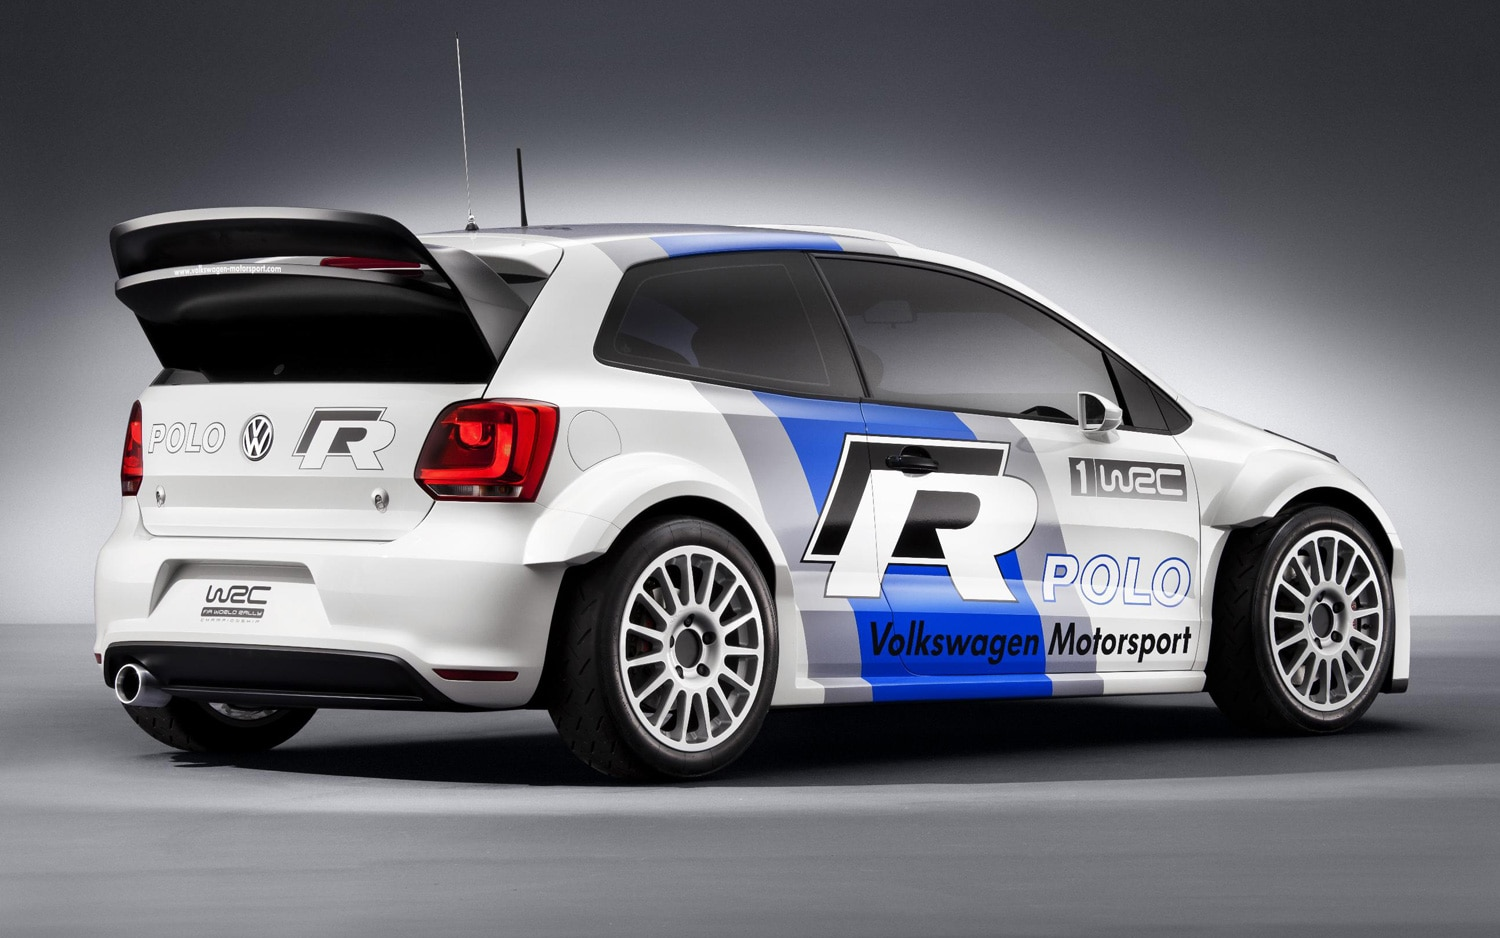 2013 Volkswagen Polo R Wrc Rear Three Quarters View11